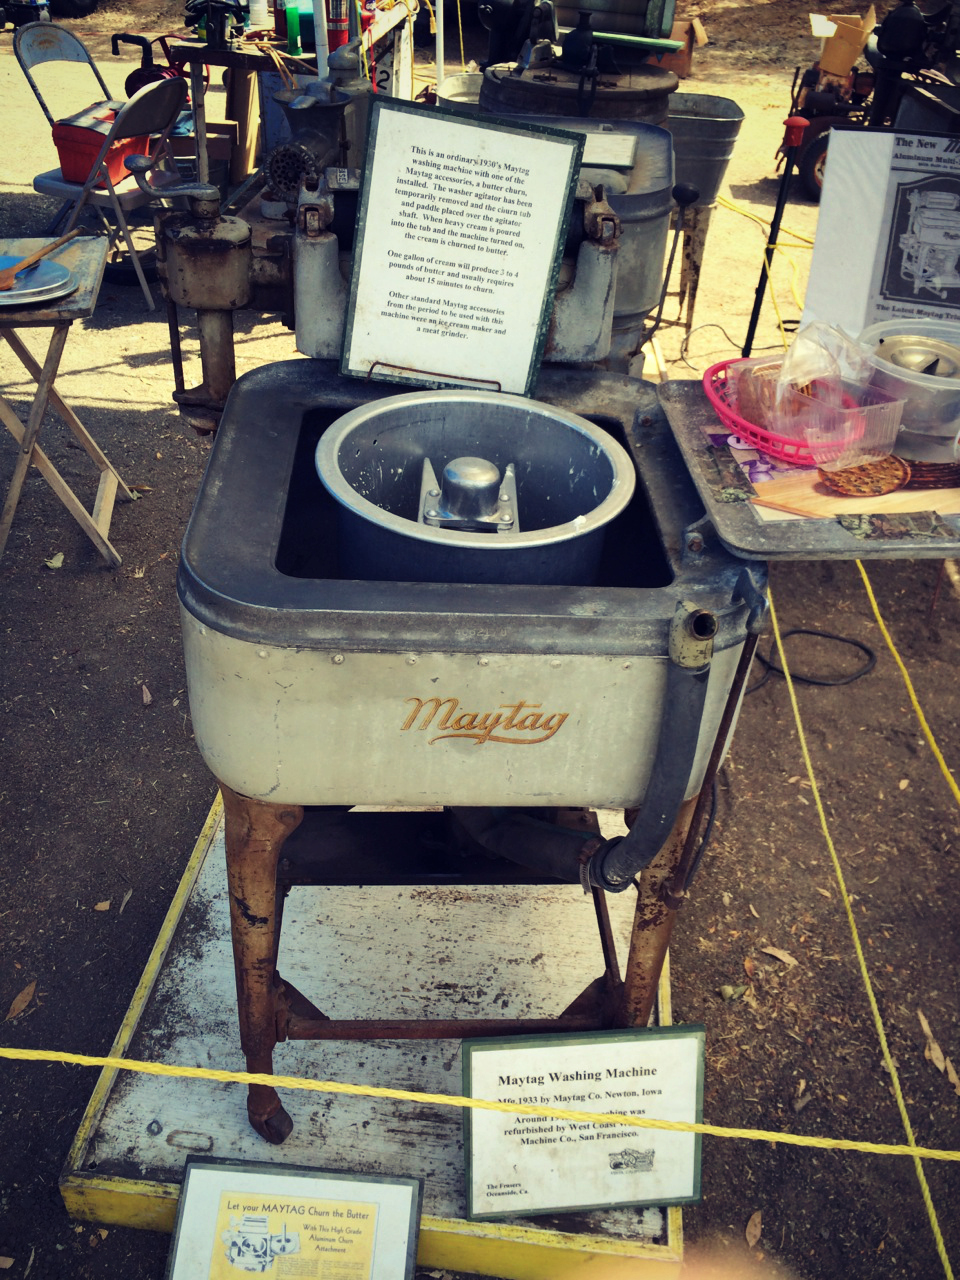 Antique-washing-machine-photo-by-yvonne-condes